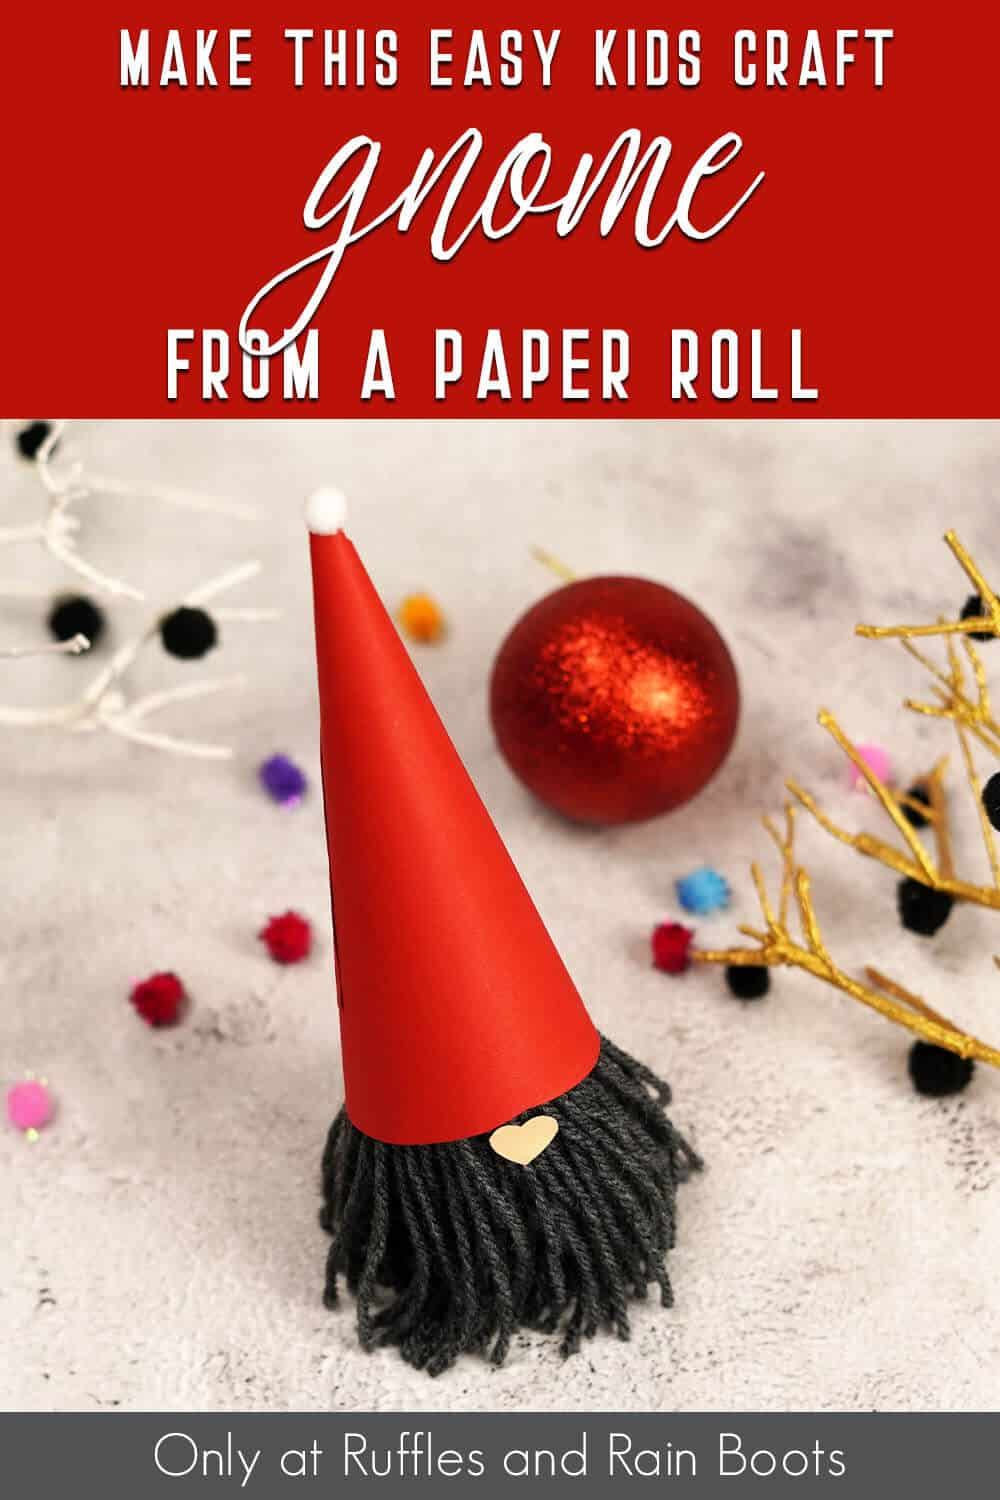 kids paper craft gnome with text which reads make this easy kids craft gnome from a paper roll